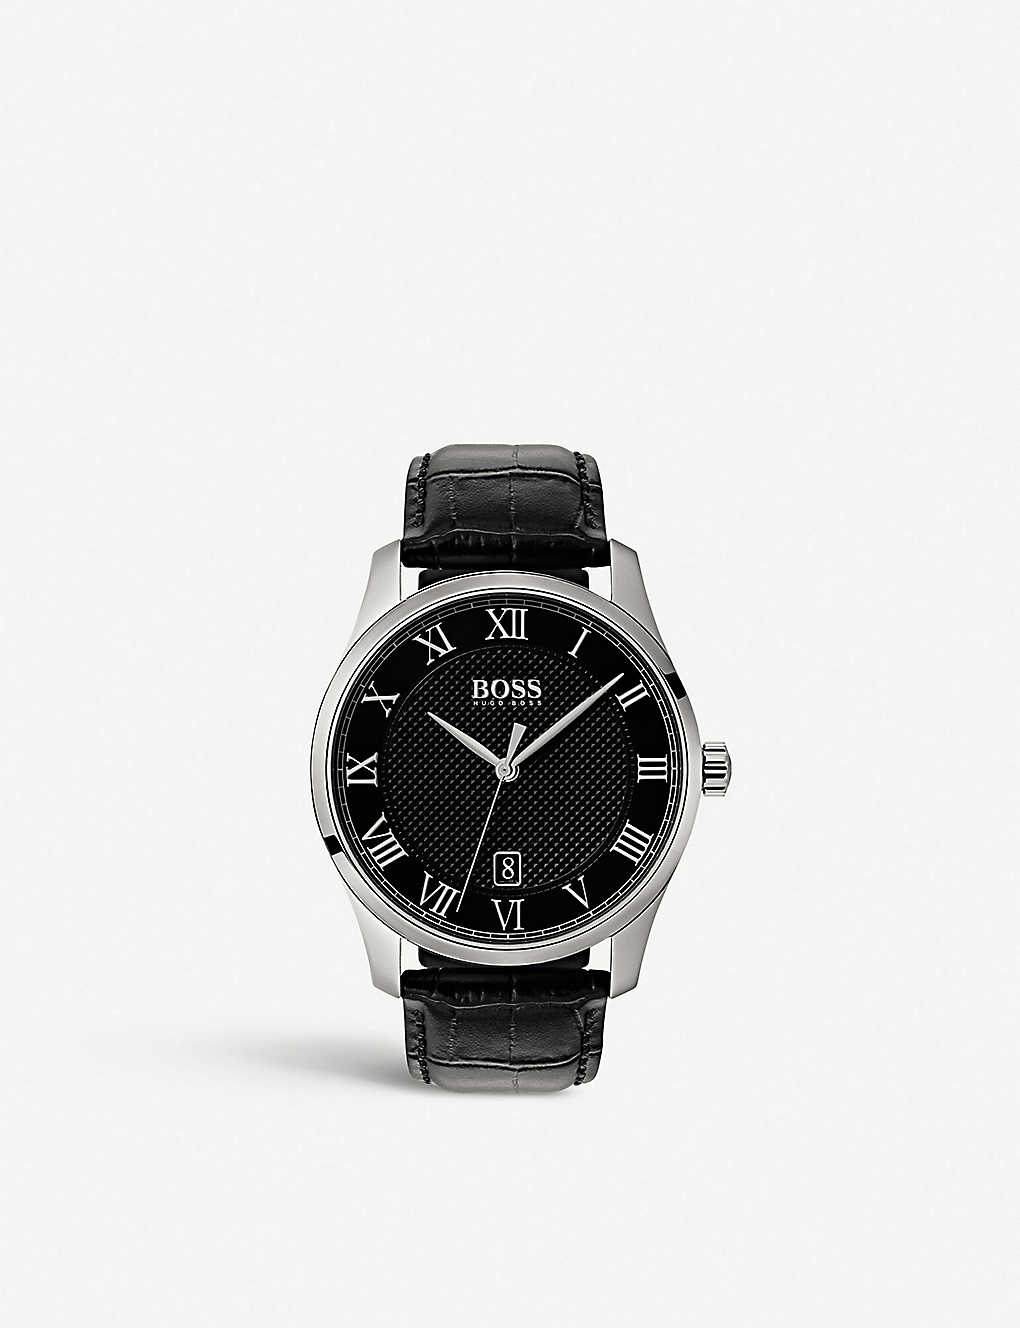 078385d87eadd BOSS - 1513585 Master stainless steel and leather watch